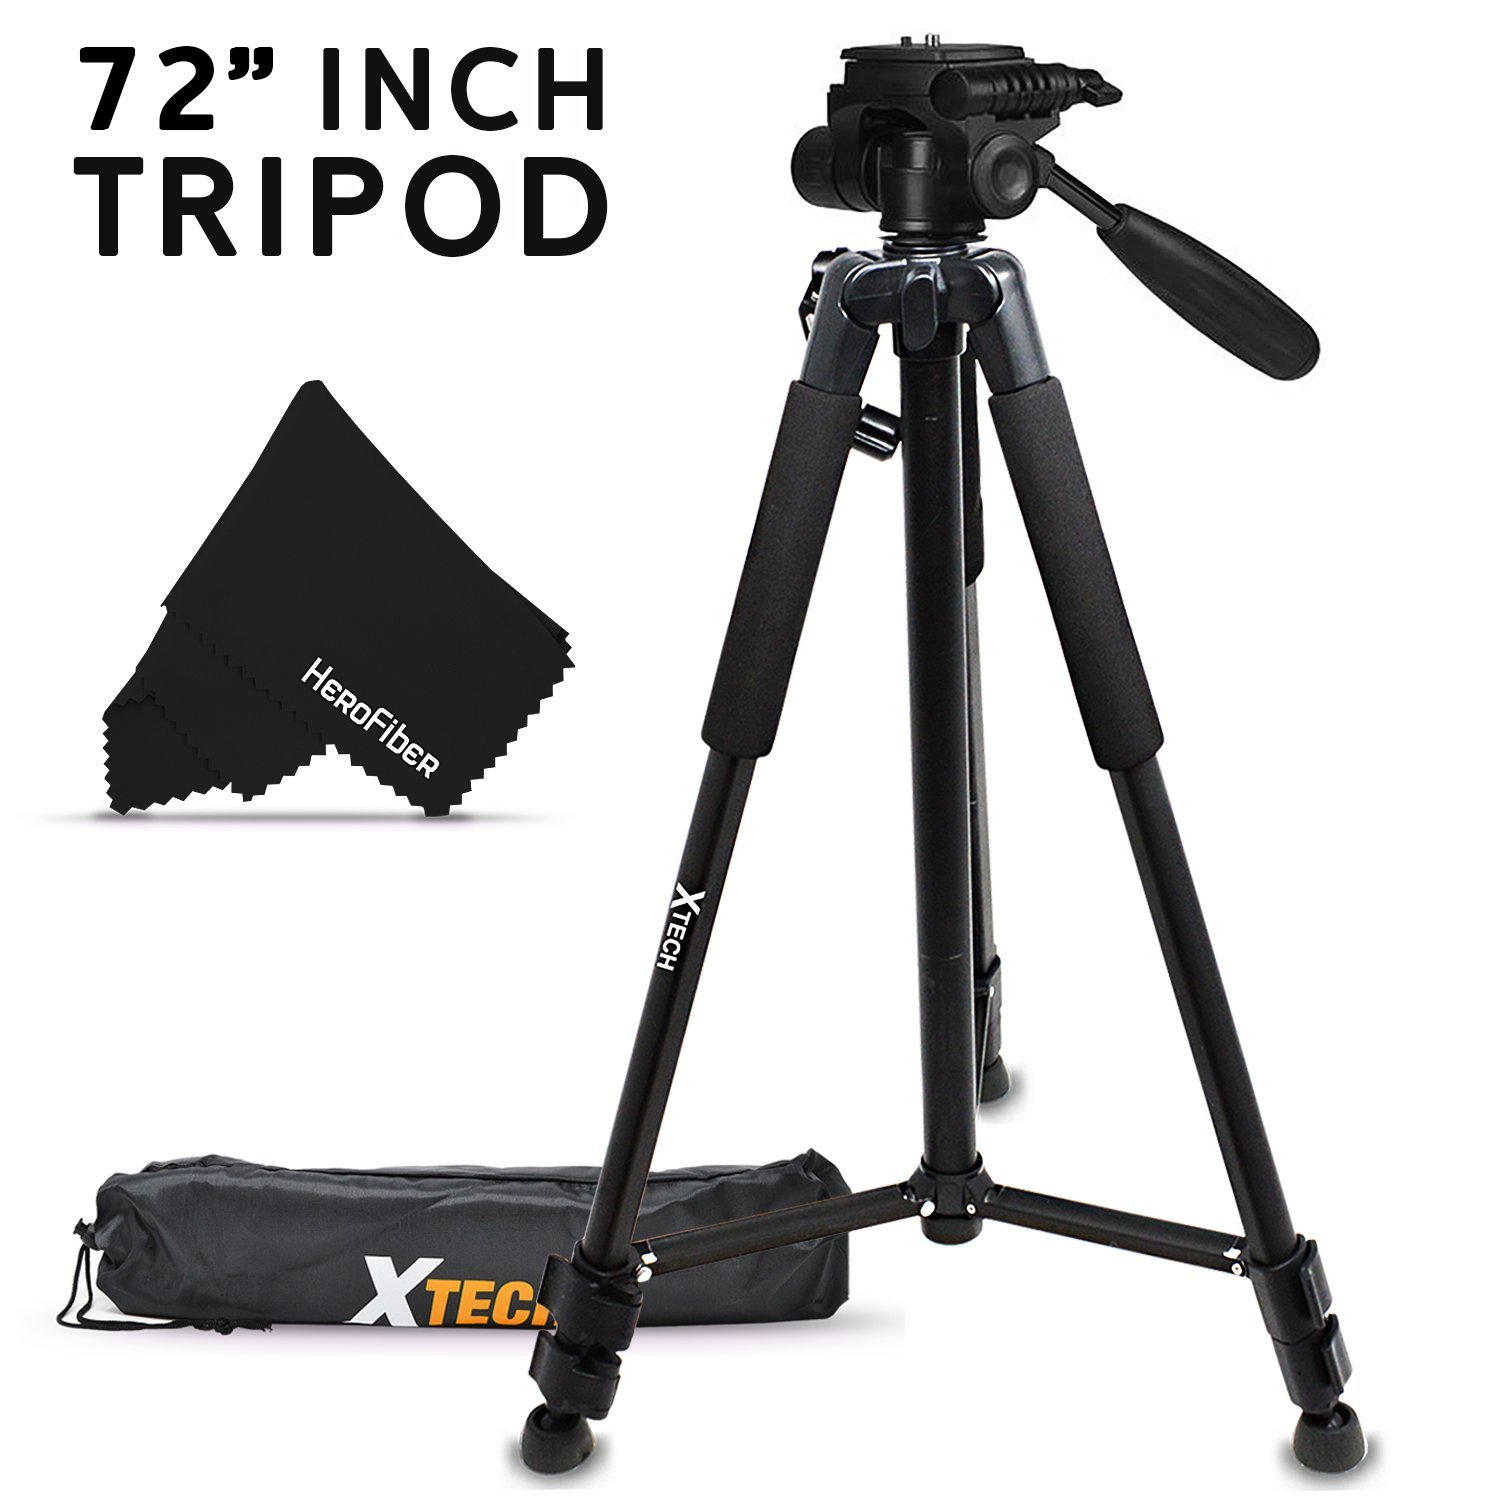 Durable Pro Grade 72 inch Full size Tripod with 3 way Pan-Head, Bubble level indicator, 3 Section Aluminum alloy lock in legs for Nikon D750 Nikon D5500, D5300, D5200, D5100, D3300, D3200, D3100, D7100, D7000, D750, D4, D4S, D3, D3S, D3X, D810, D800, D800